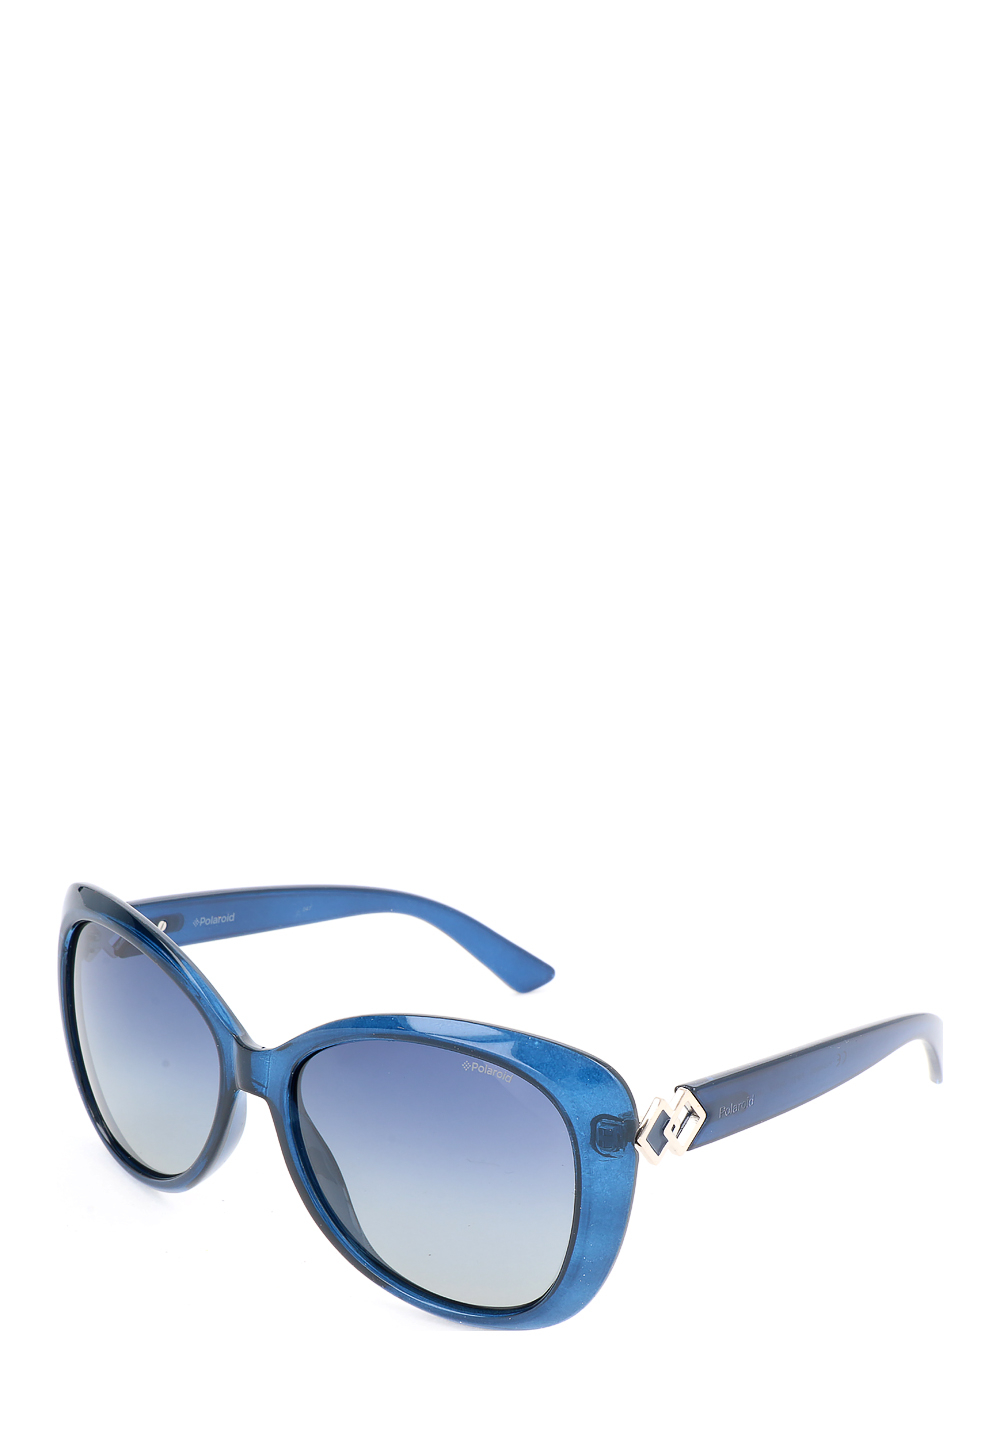 Sonnenbrille Pld4050/S, polarized, Uv400, blue blau